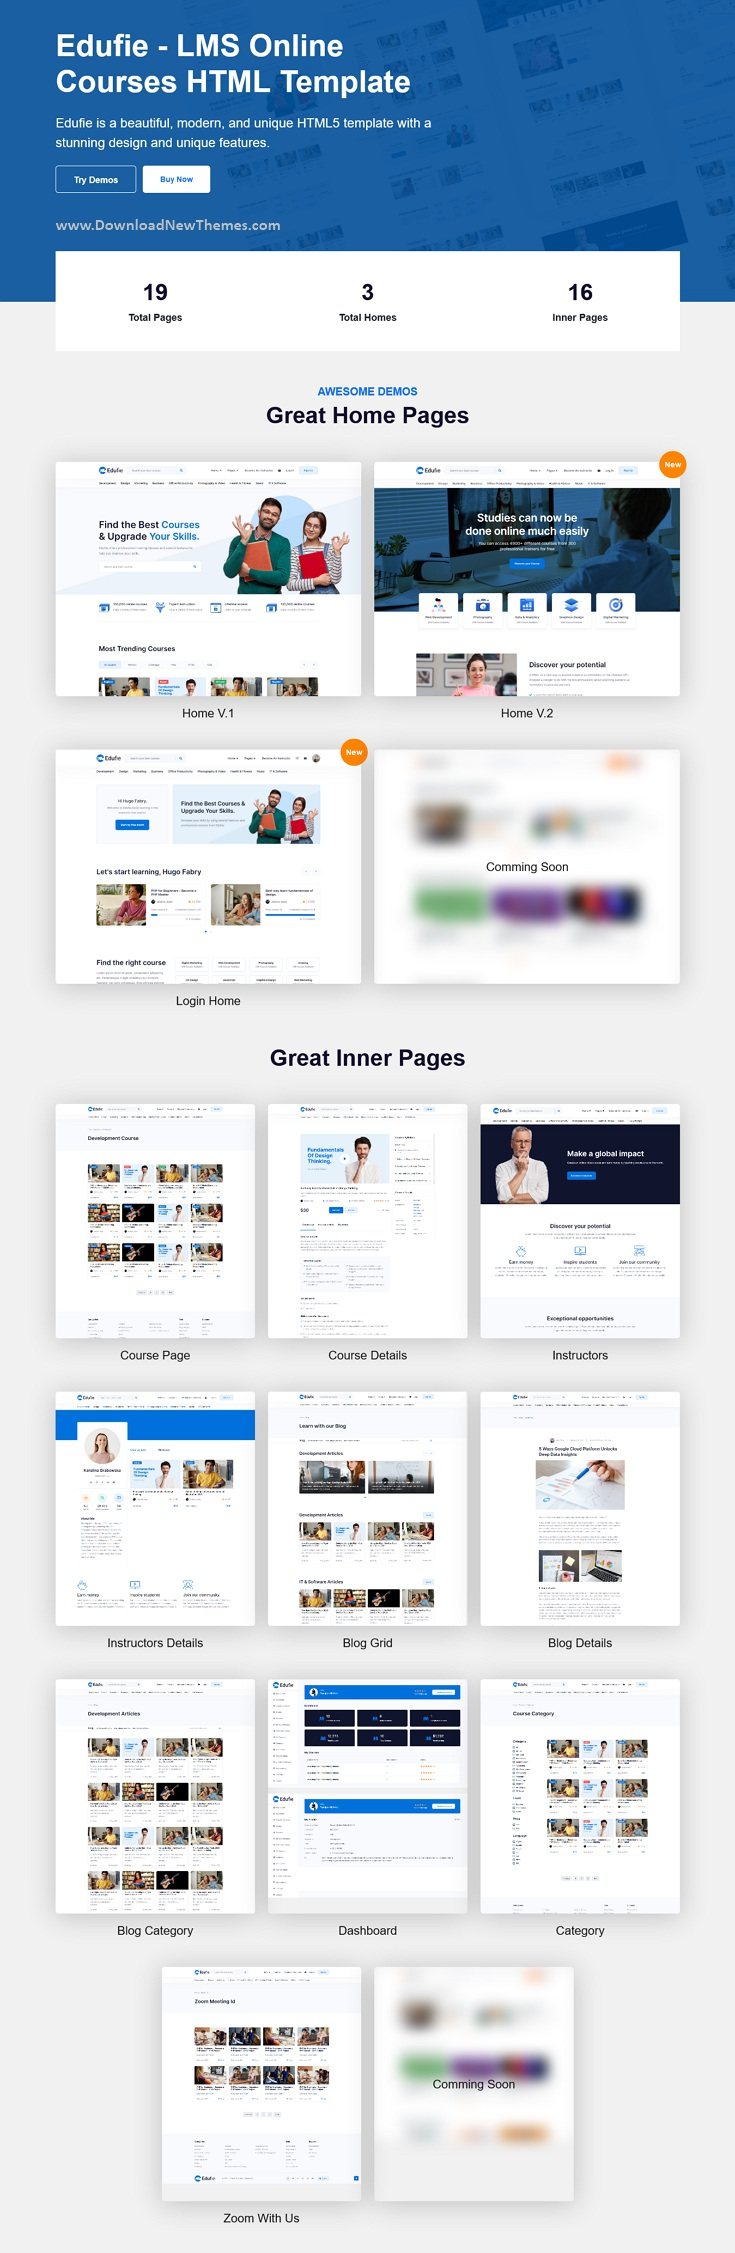 Best LMS Online Courses HTML Template